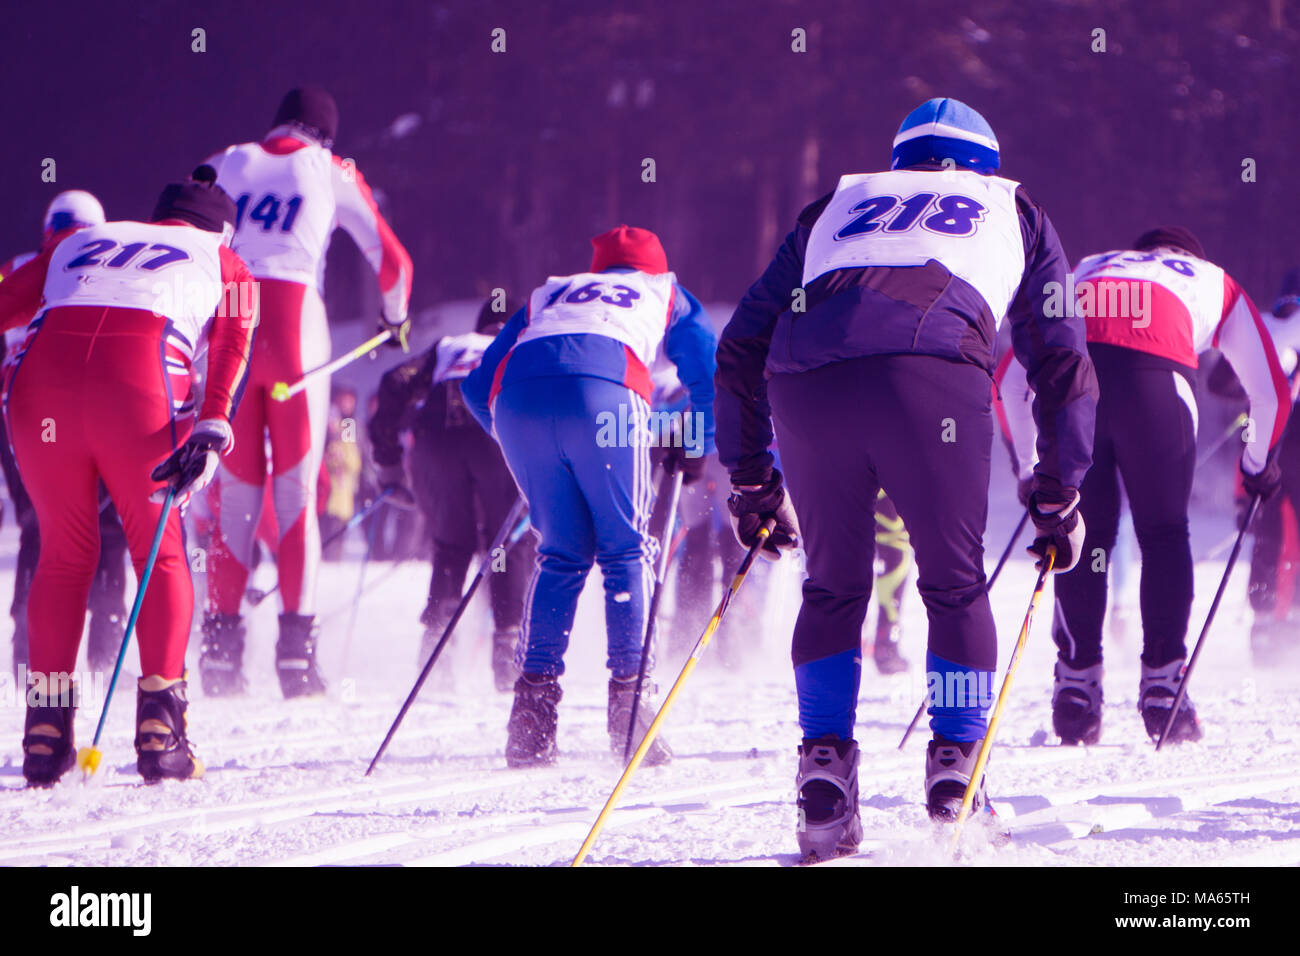 People skiing competitions at the beginning of the ski slope at the ski resort . - Stock Image